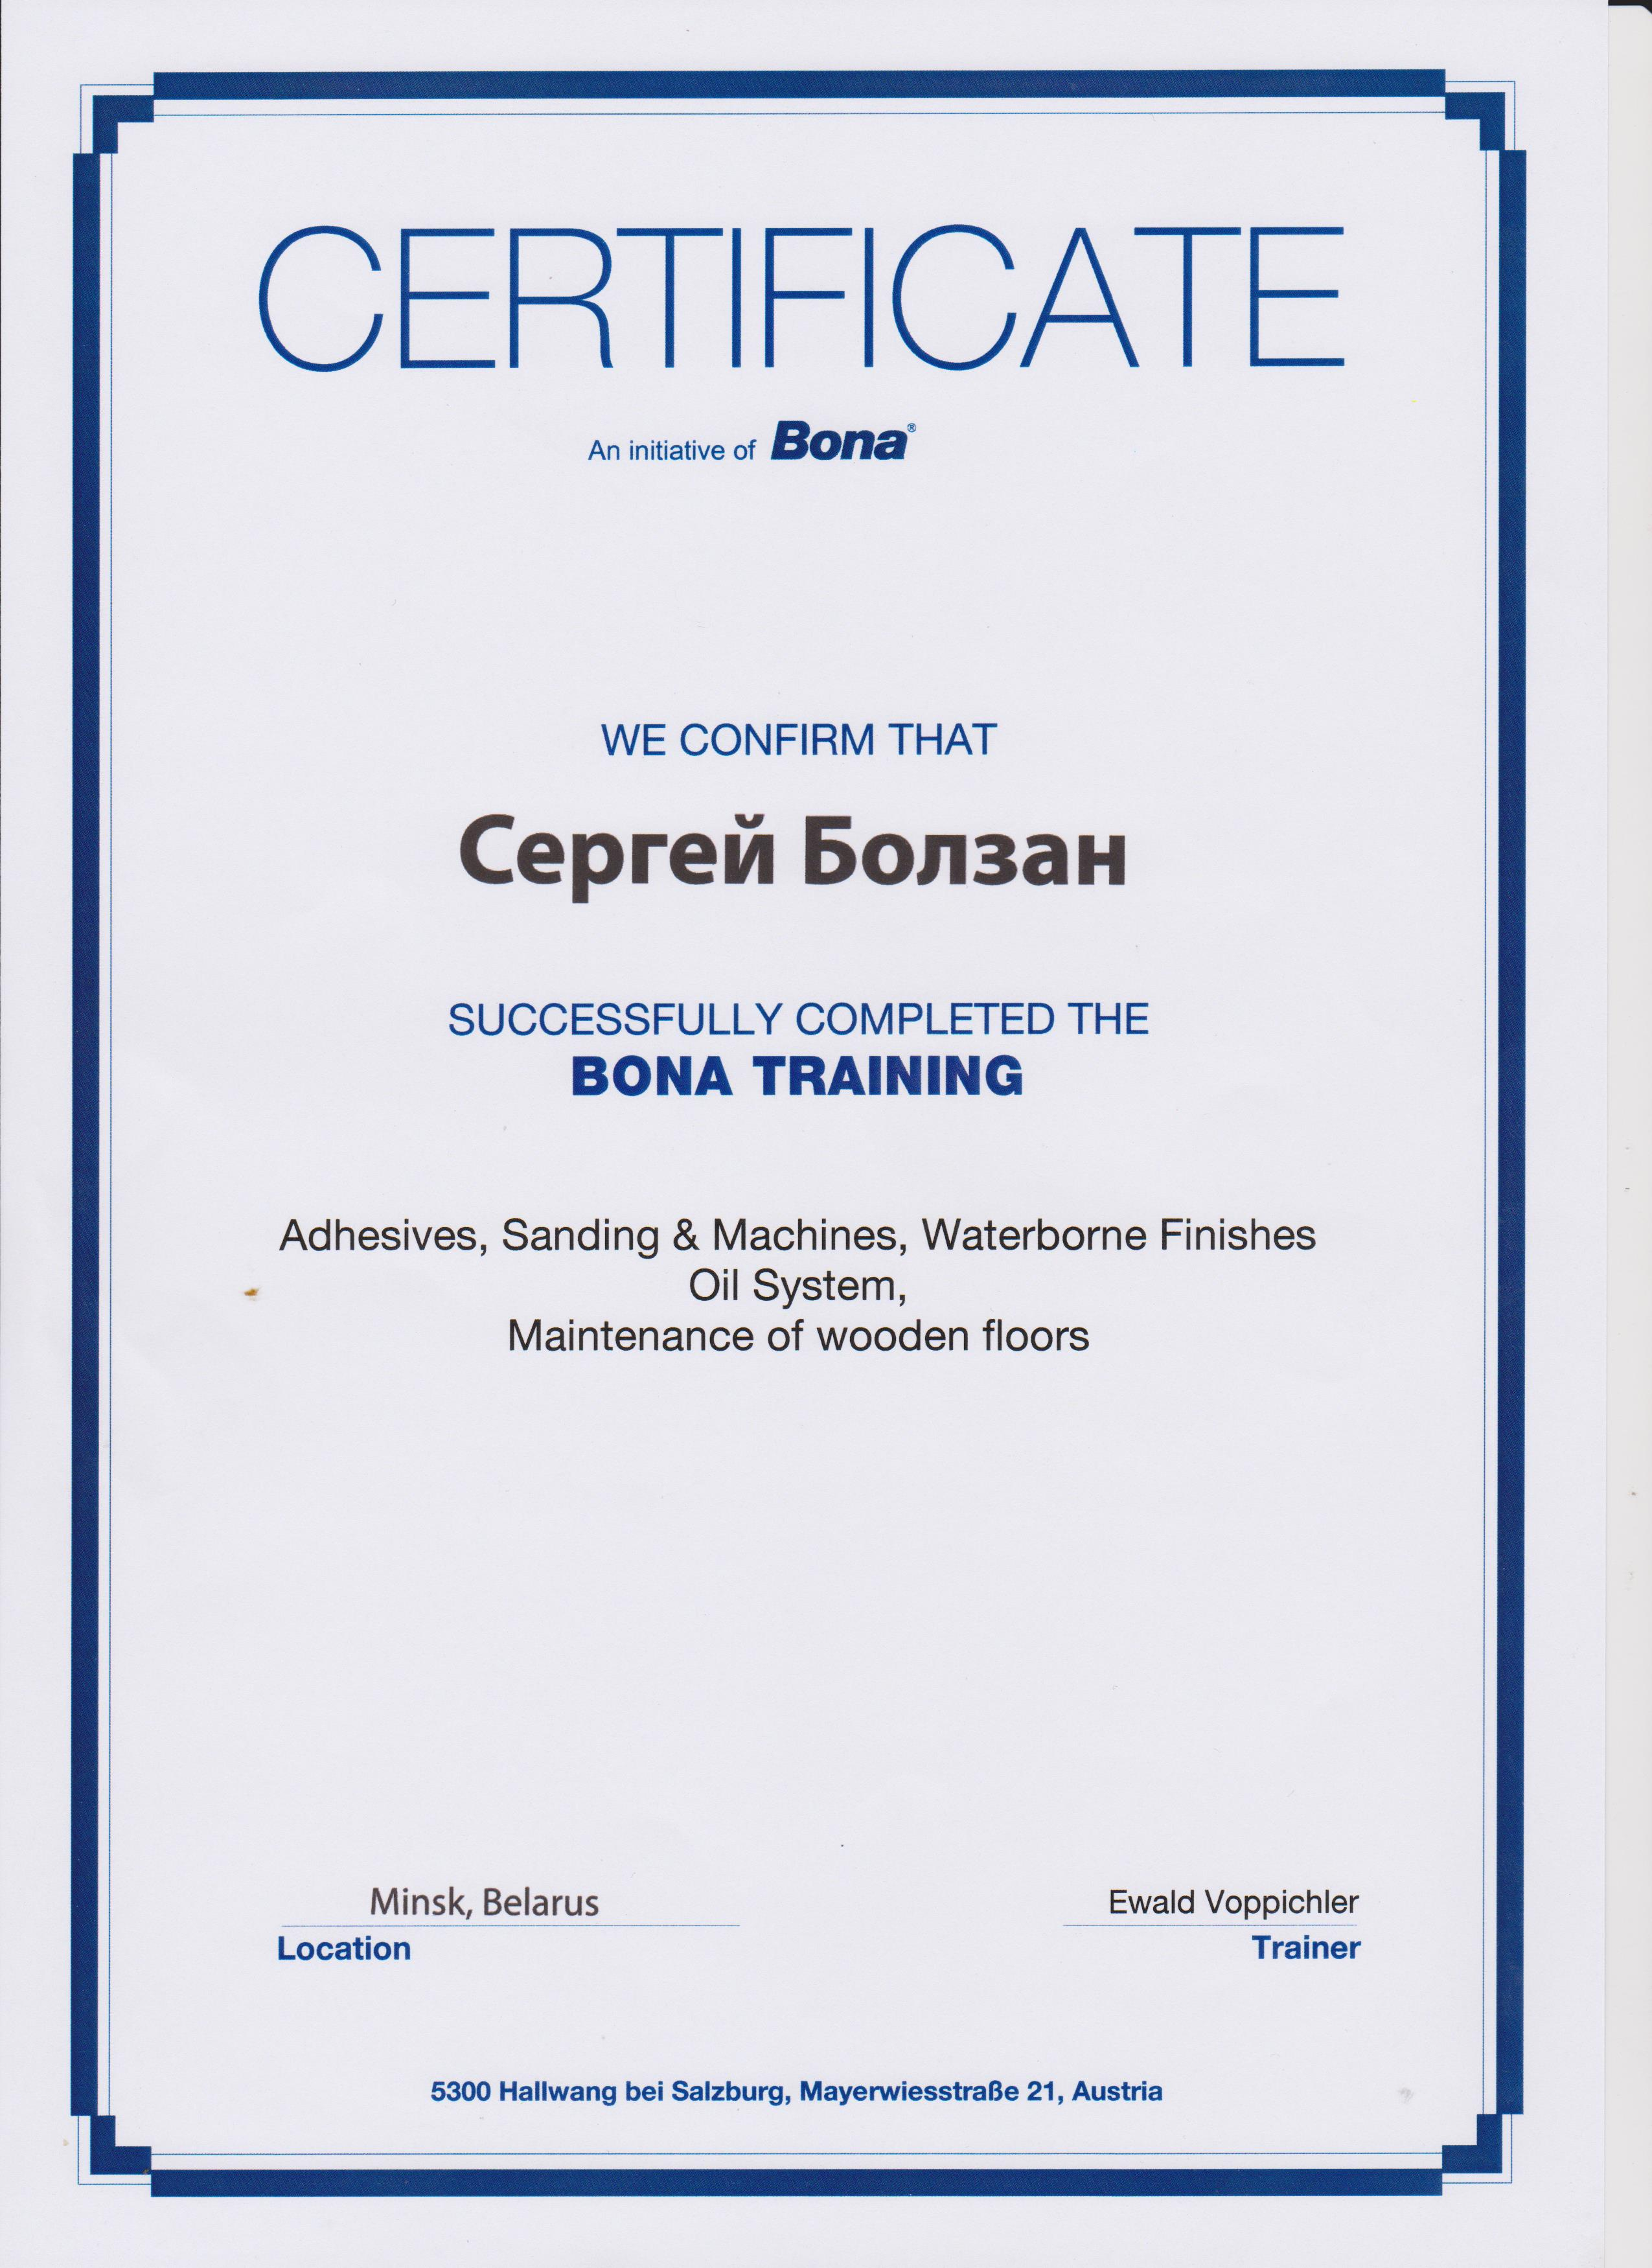 Sertificate an initiative of Bona